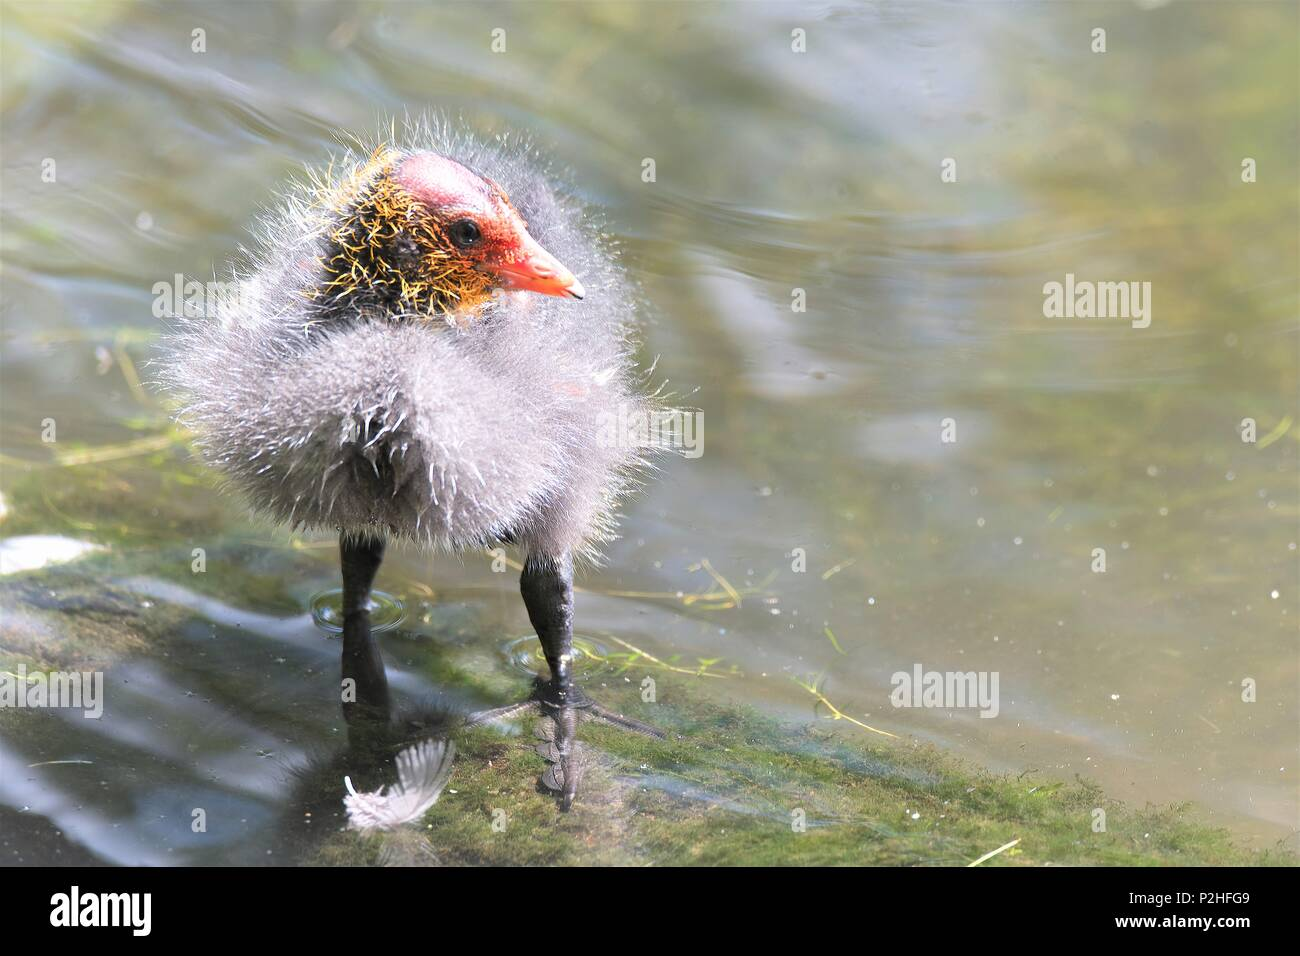 Taken to capture the lovely cute white feather downing of this very young Coot chick. - Stock Image